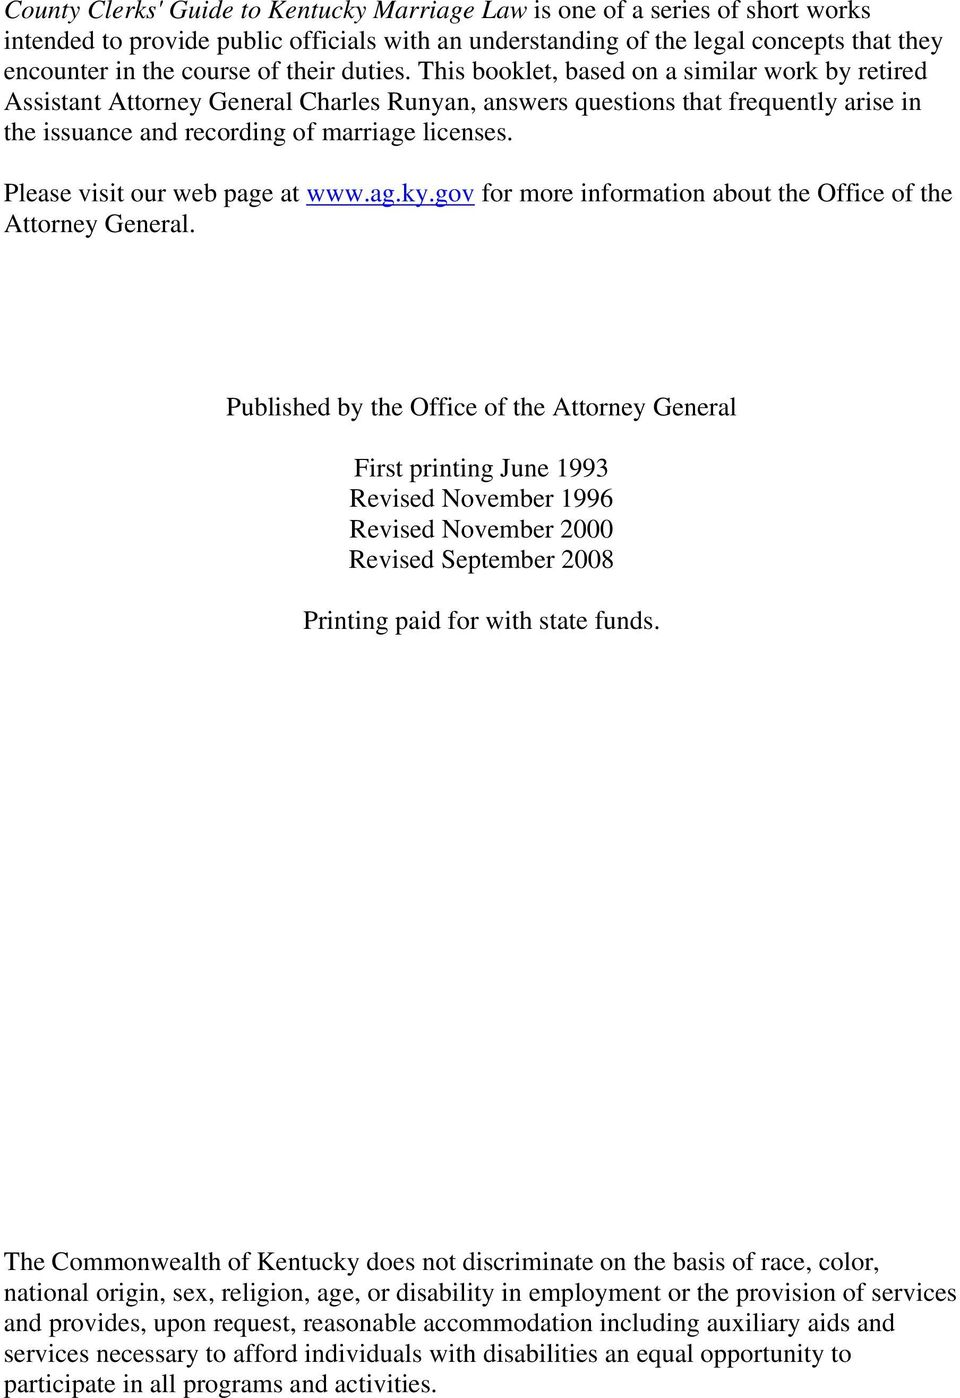 Please visit our web page at www.ag.ky.gov for more information about the Office of the Attorney General.